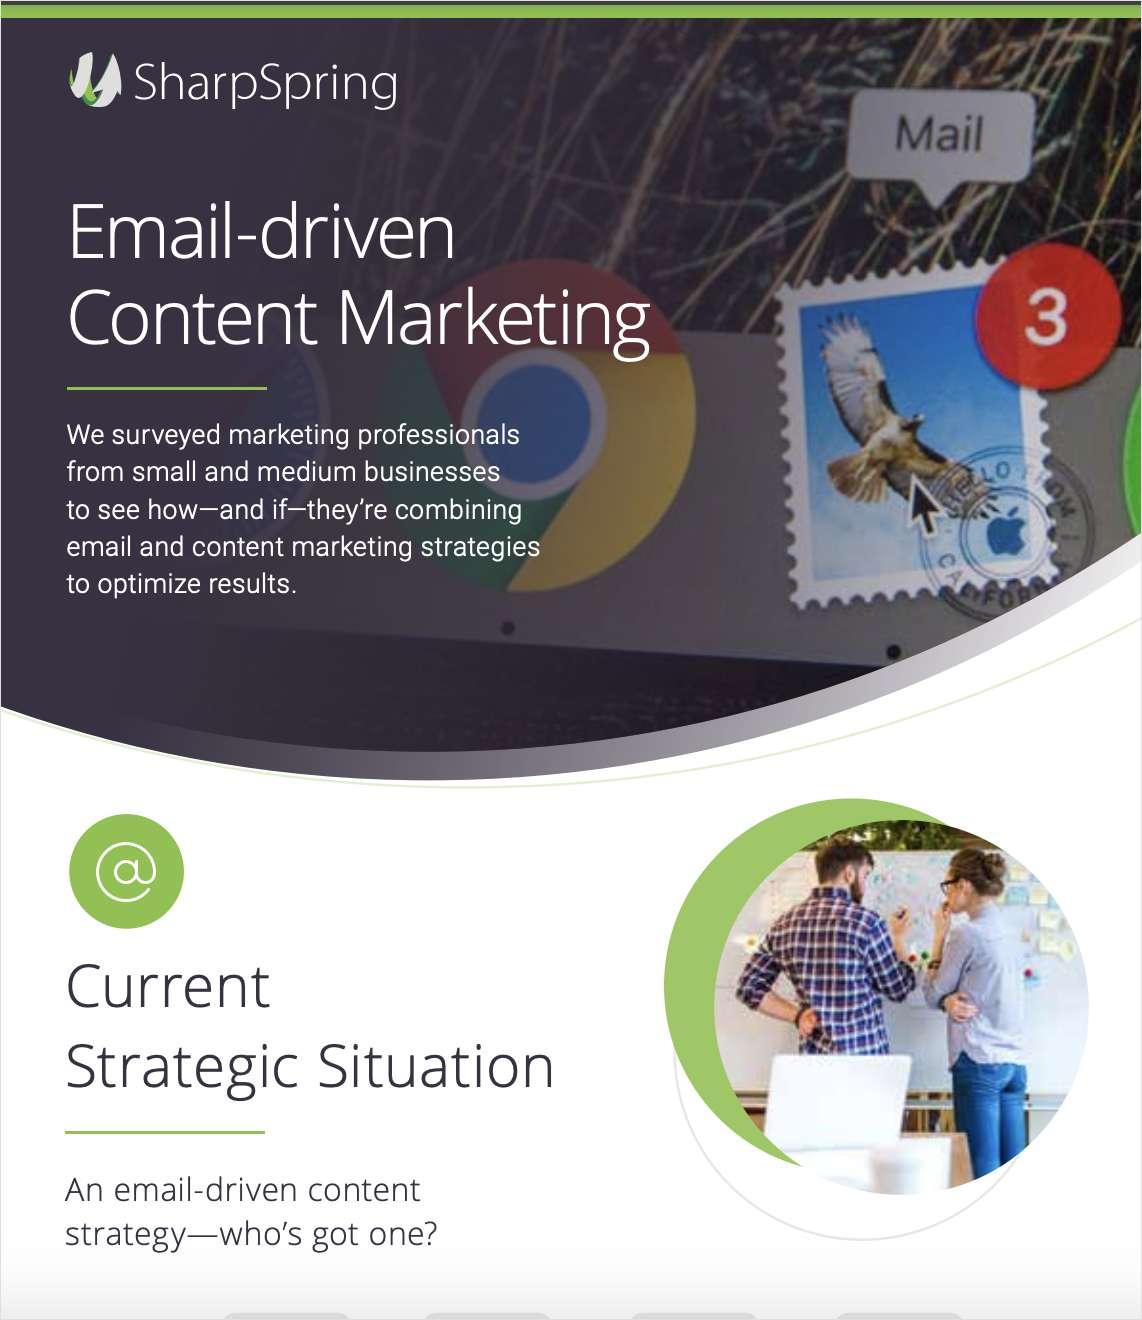 Email-driven Content Marketing for Businesses